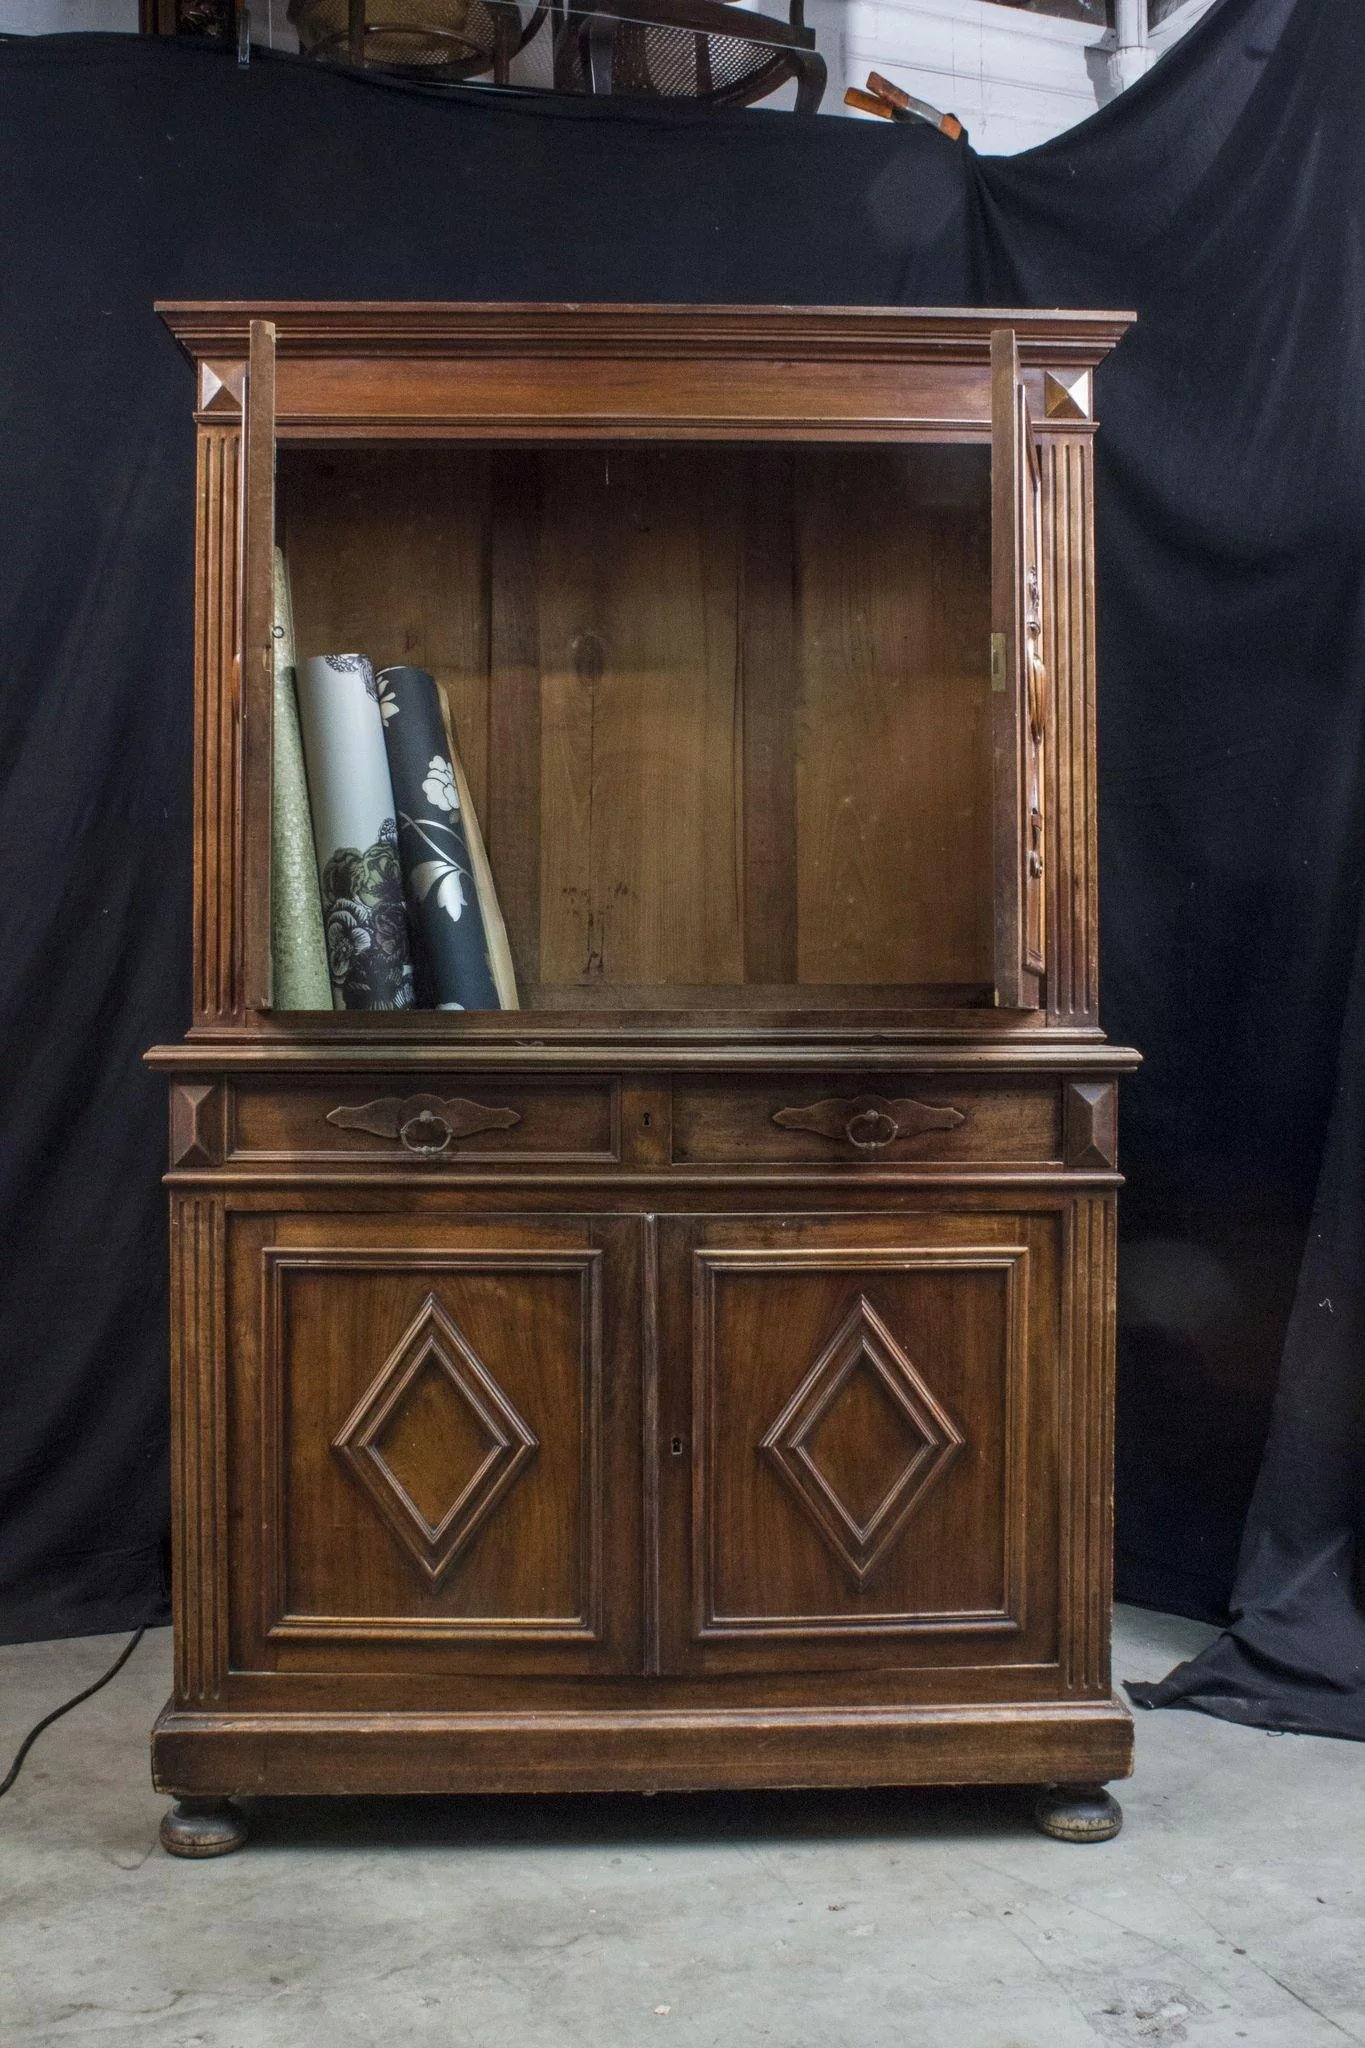 Early 19th Century Italian Walnut Dresser Kipper Designs RubyLUX